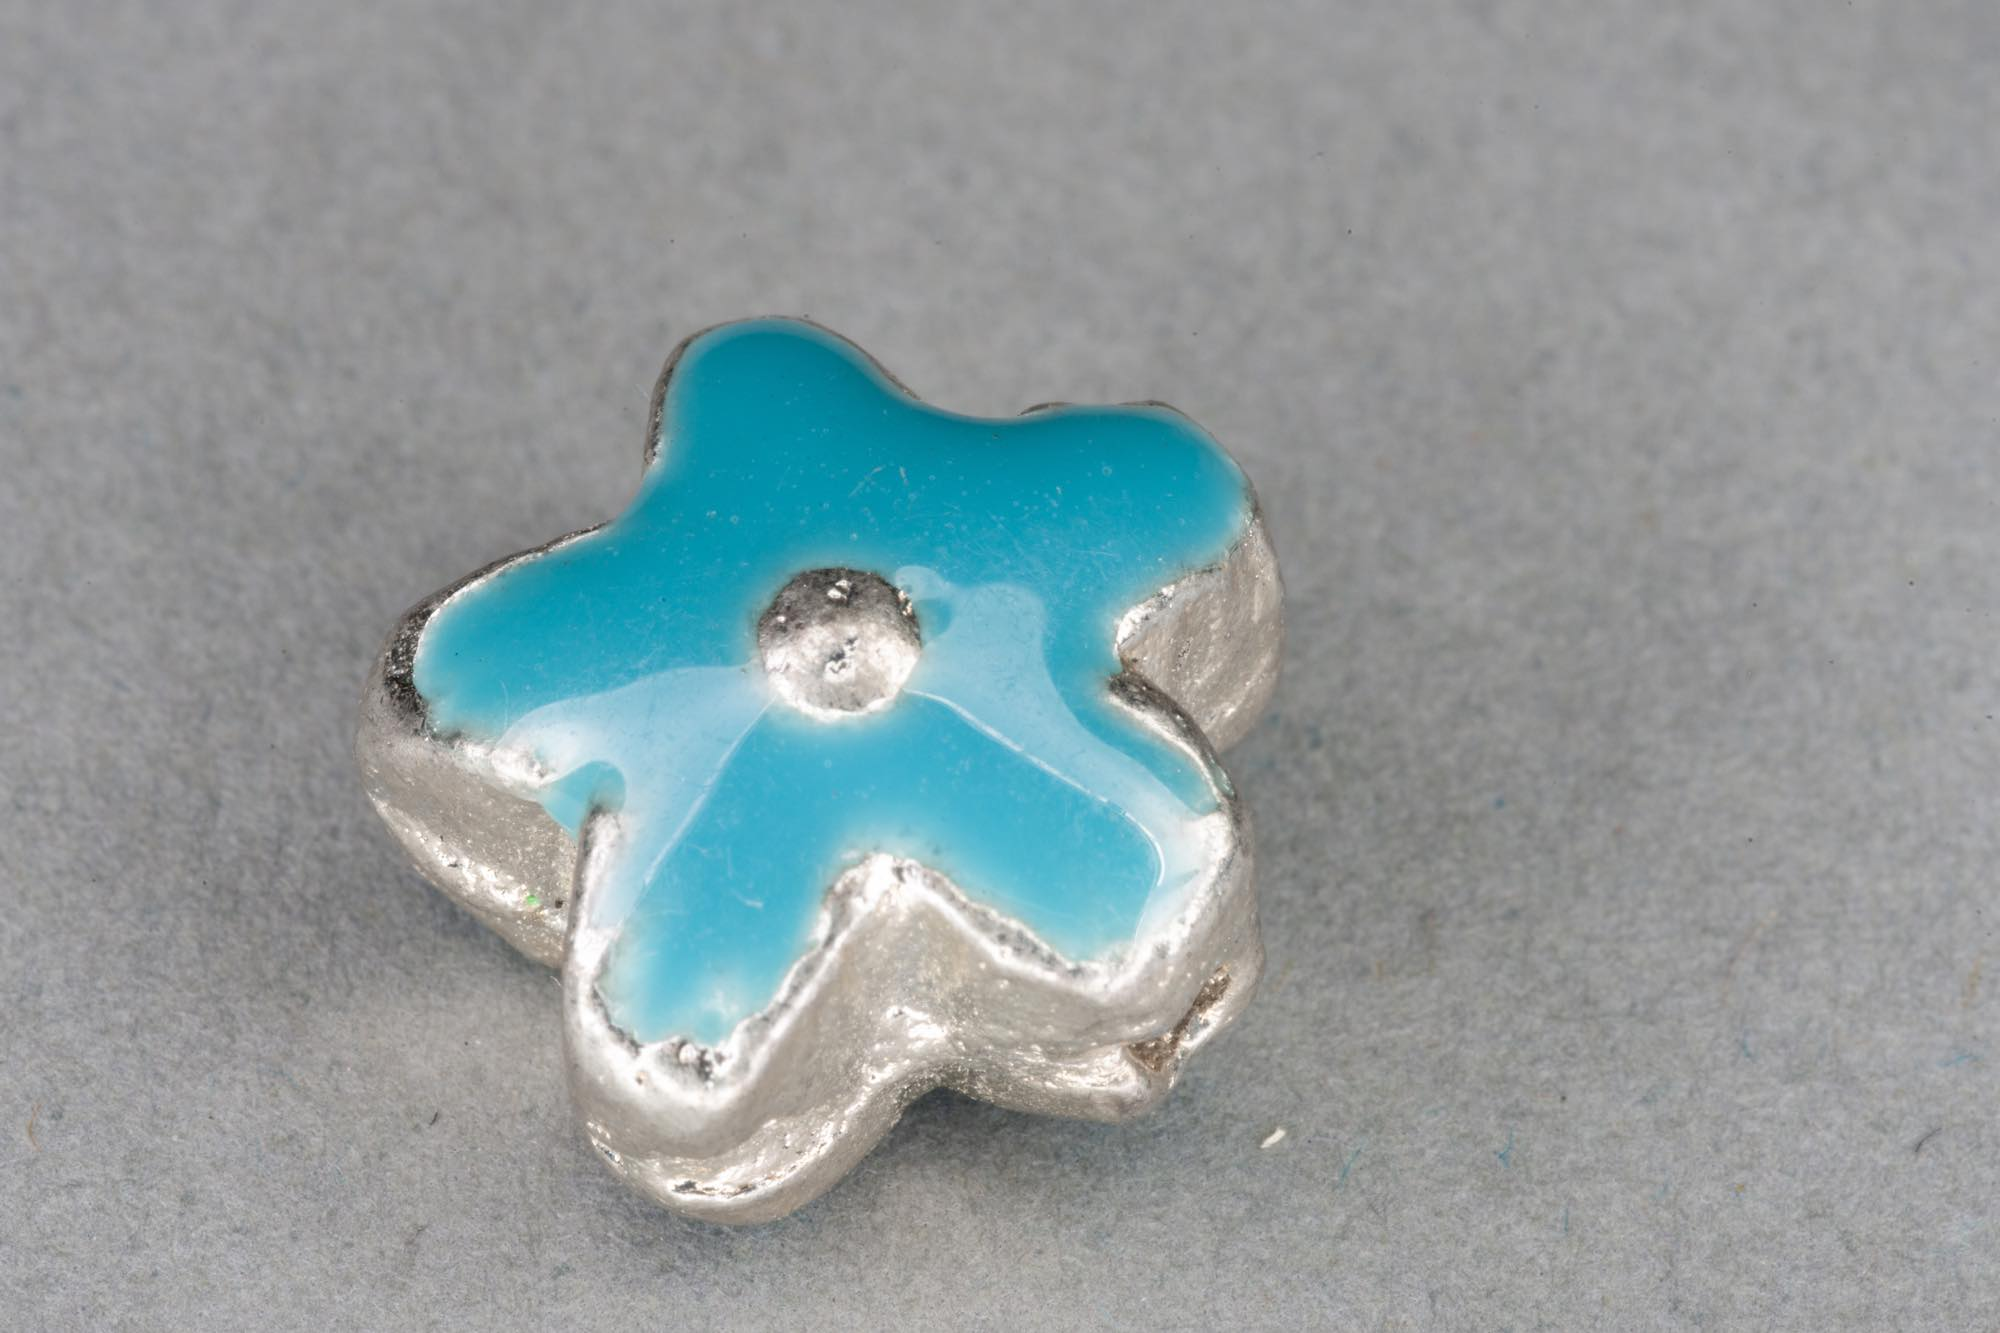 Silver Plated Metal Flower Bead With Turquoise Enamel Effect 14x7mm, 1.2mm hole